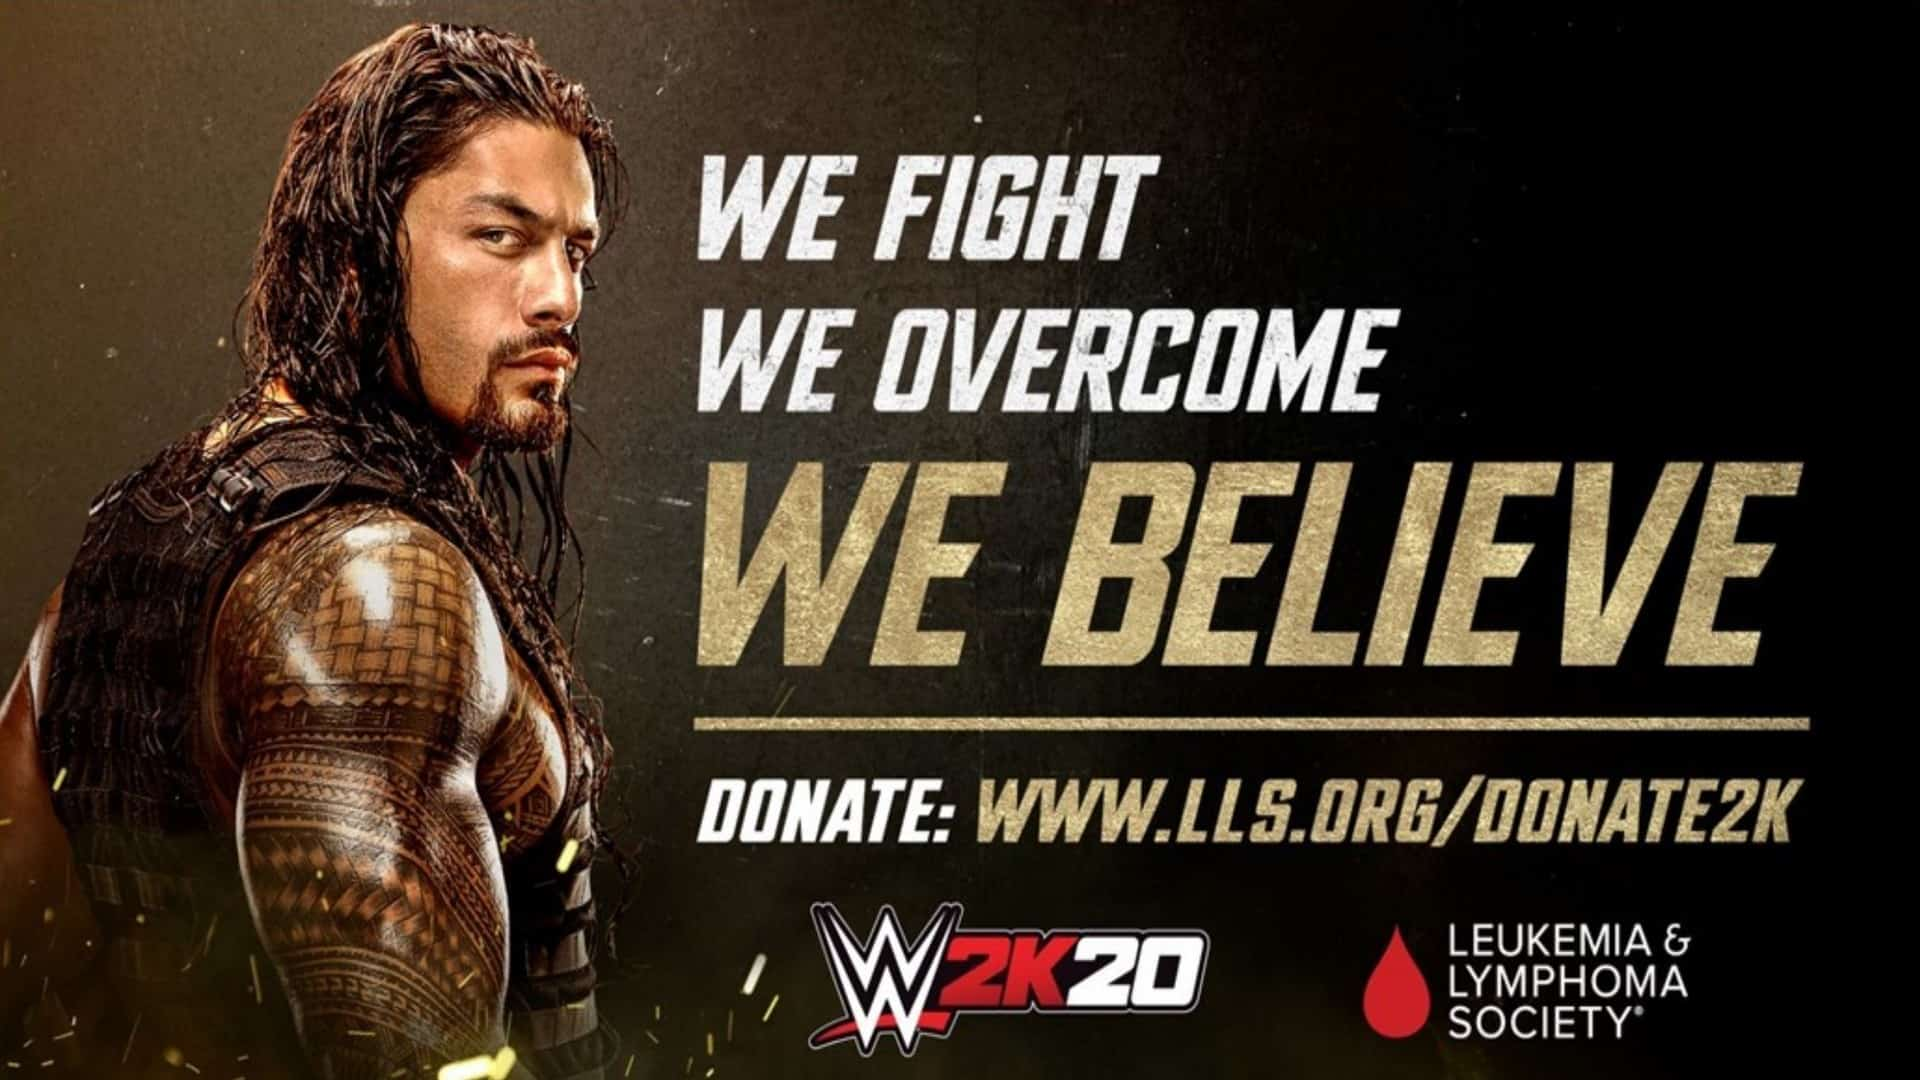 2K Announces Global Partnership For WWE 2K20 With The Leukemia & Lymphoma Society